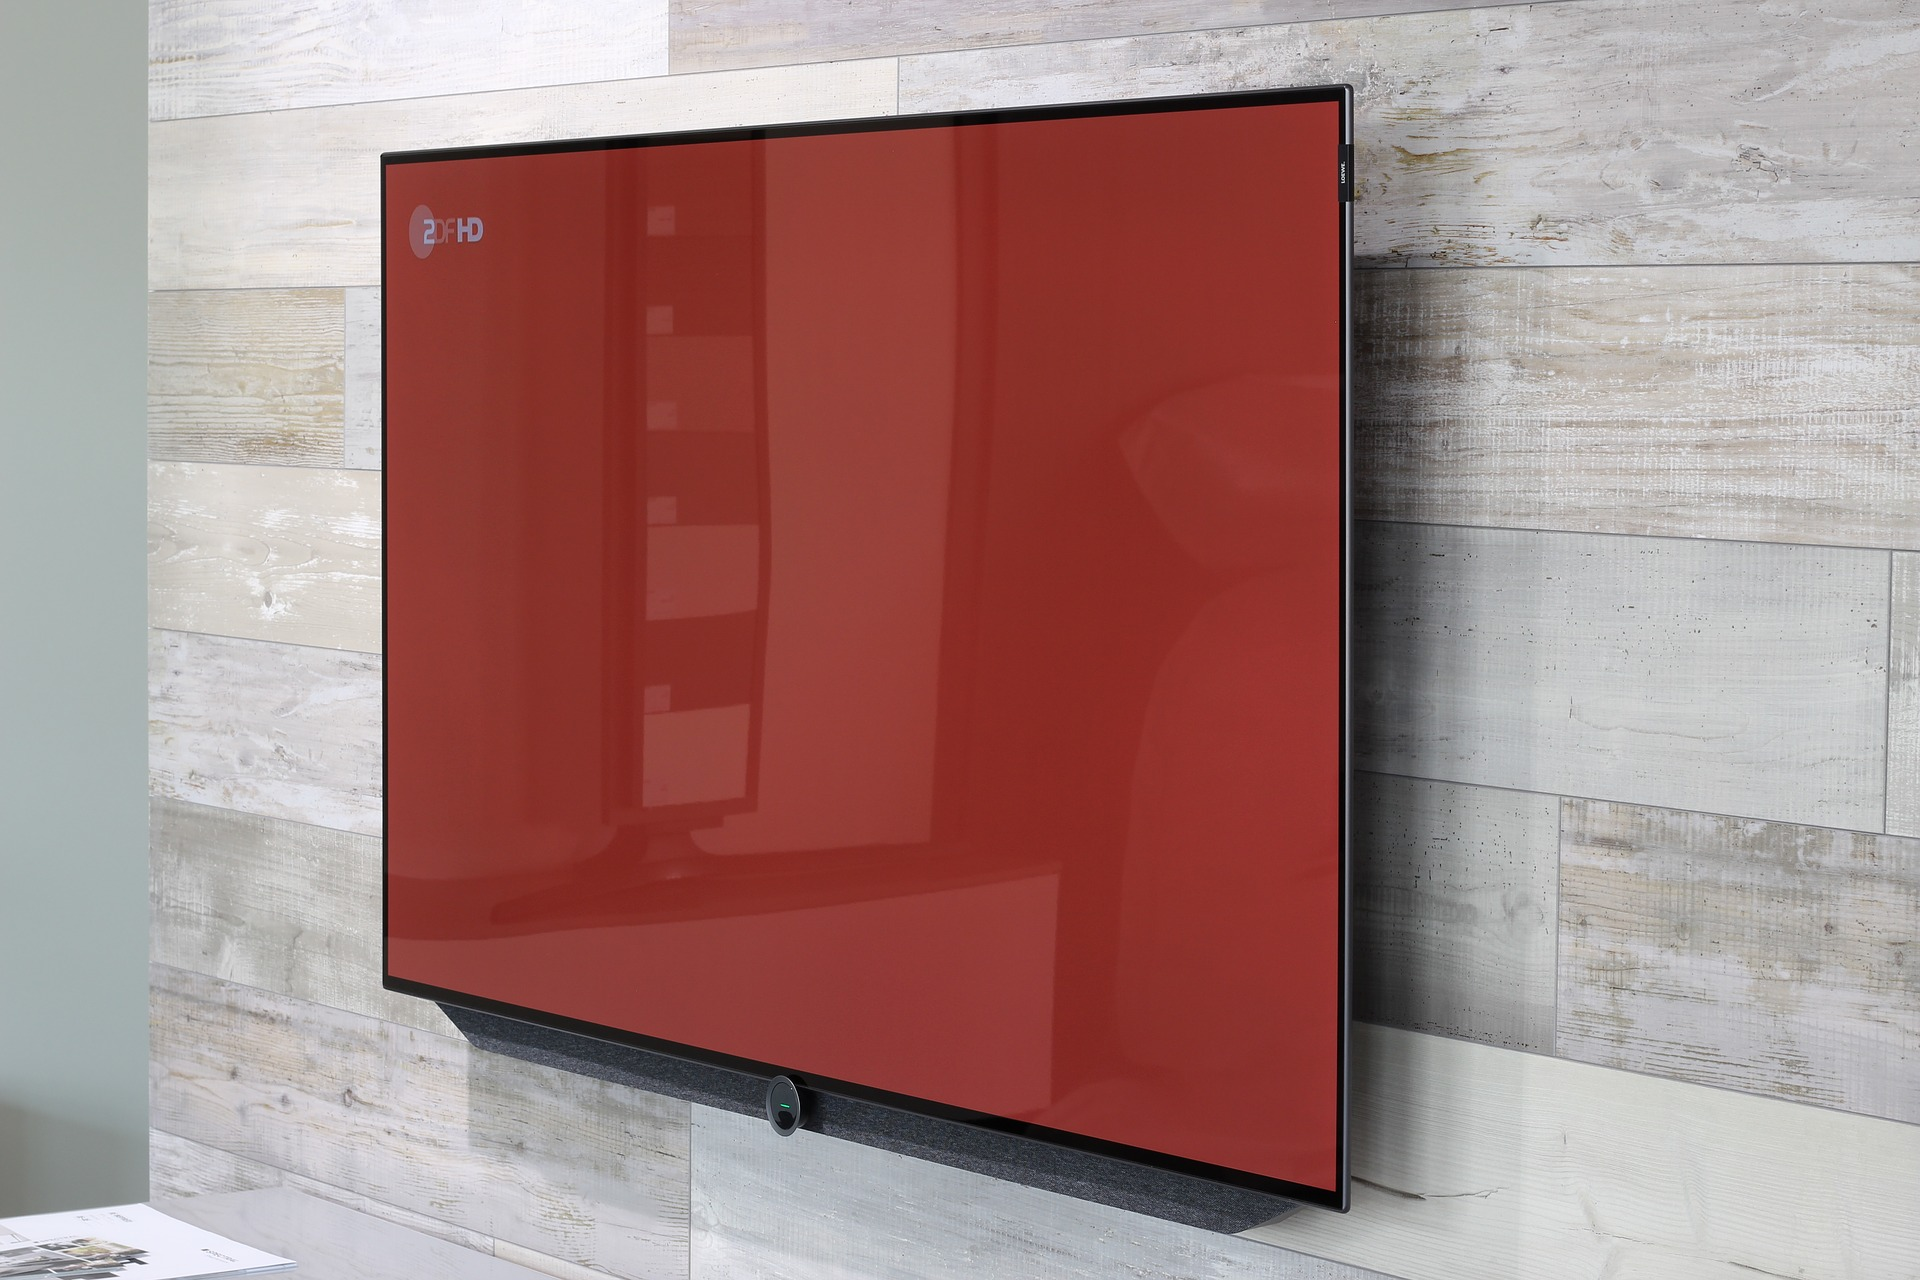 Flatscreen TV Installations